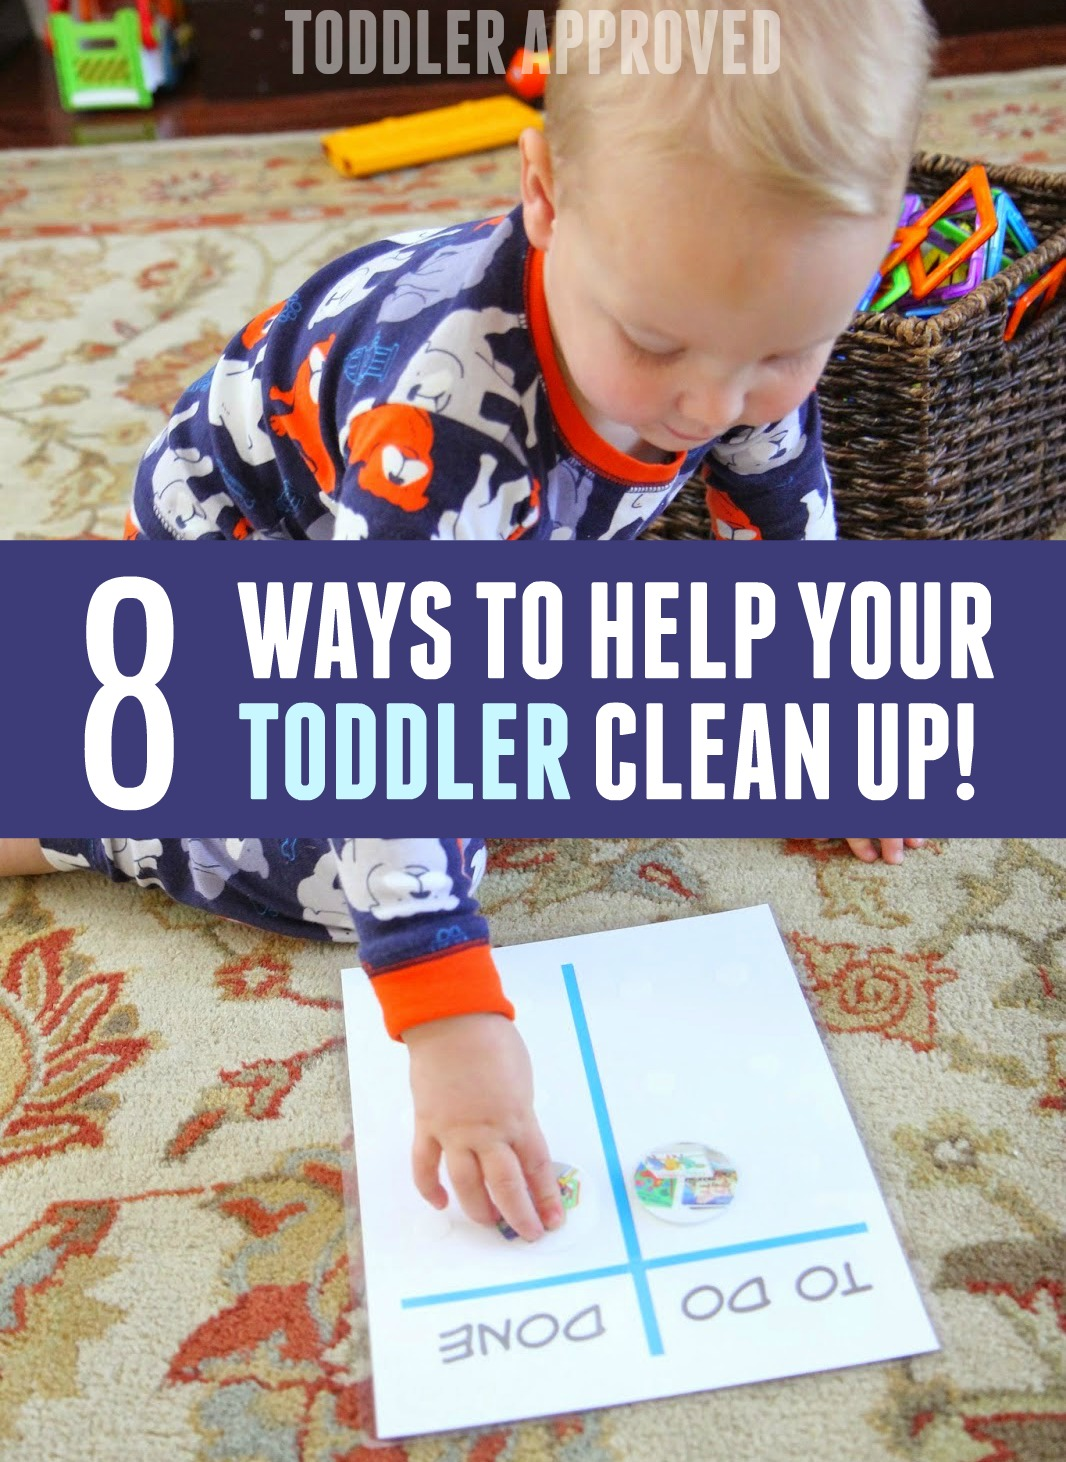 Toddler approved how do i get my toddler to clean up teaching kids to clean up after themselves and participate in family jobs takes time and patience and can be so beneficial to them in the long run though solutioingenieria Image collections